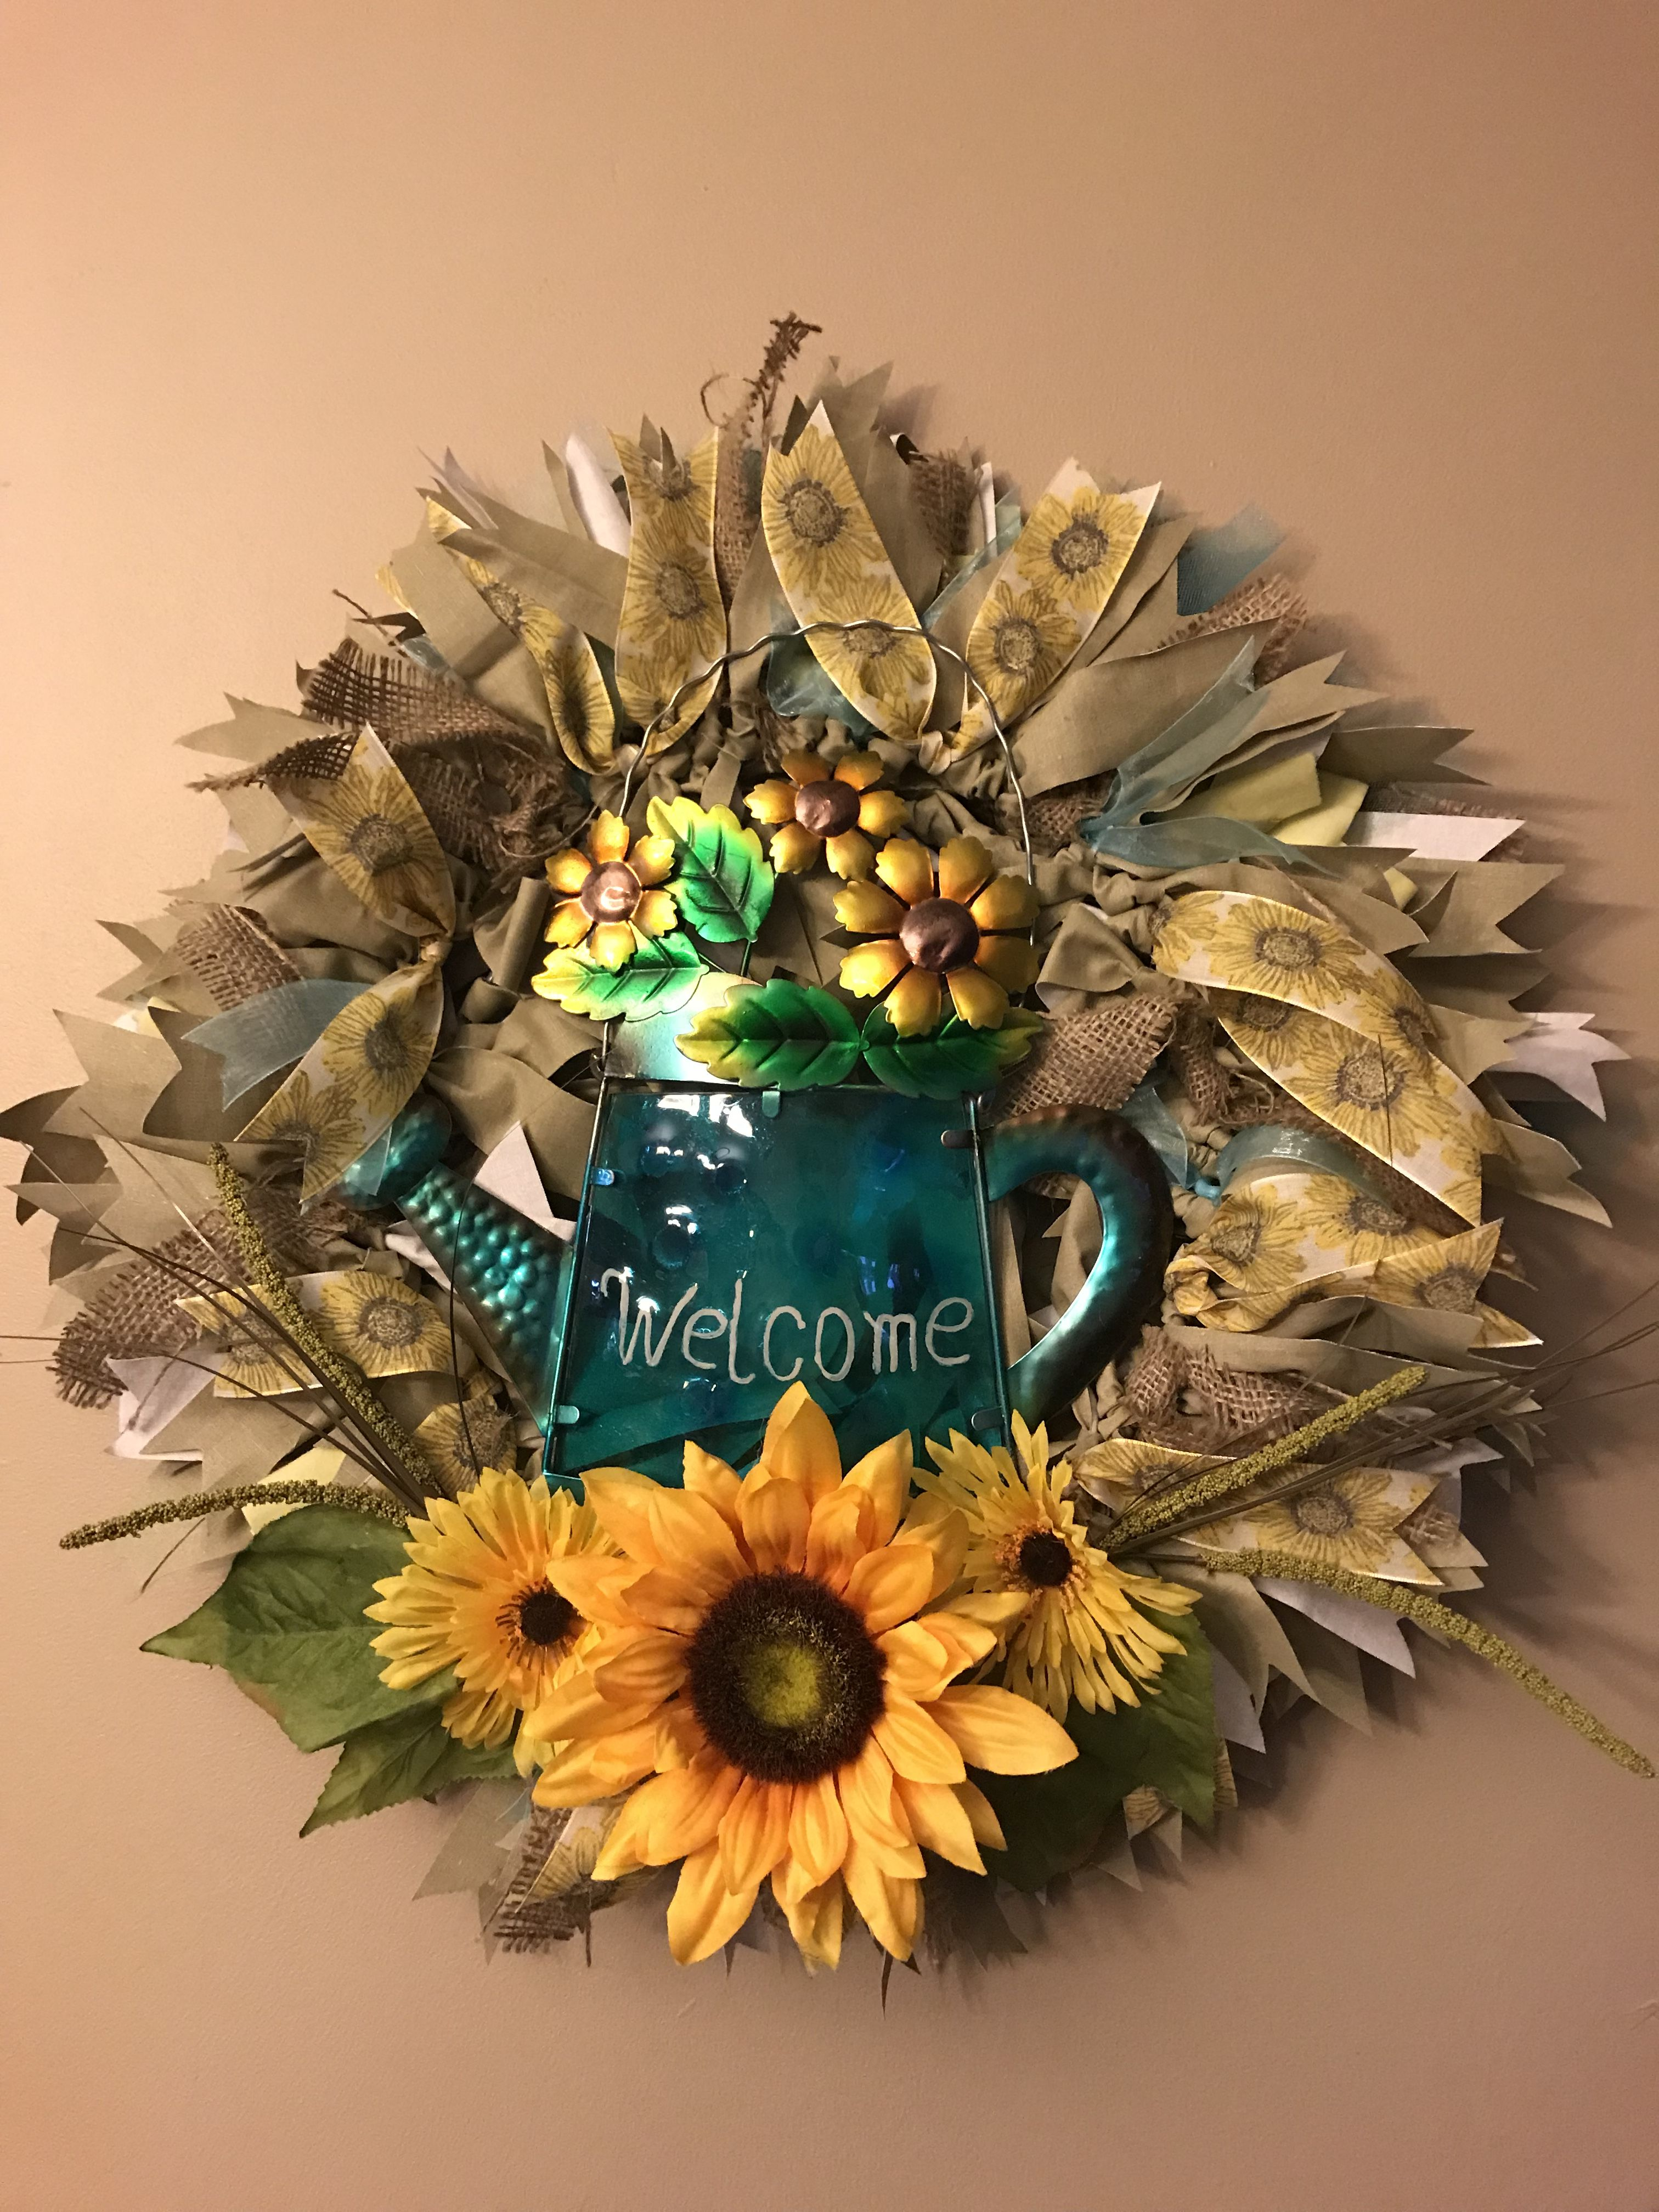 Forever summer sunflower wreath 16in fabric wreath adorned with